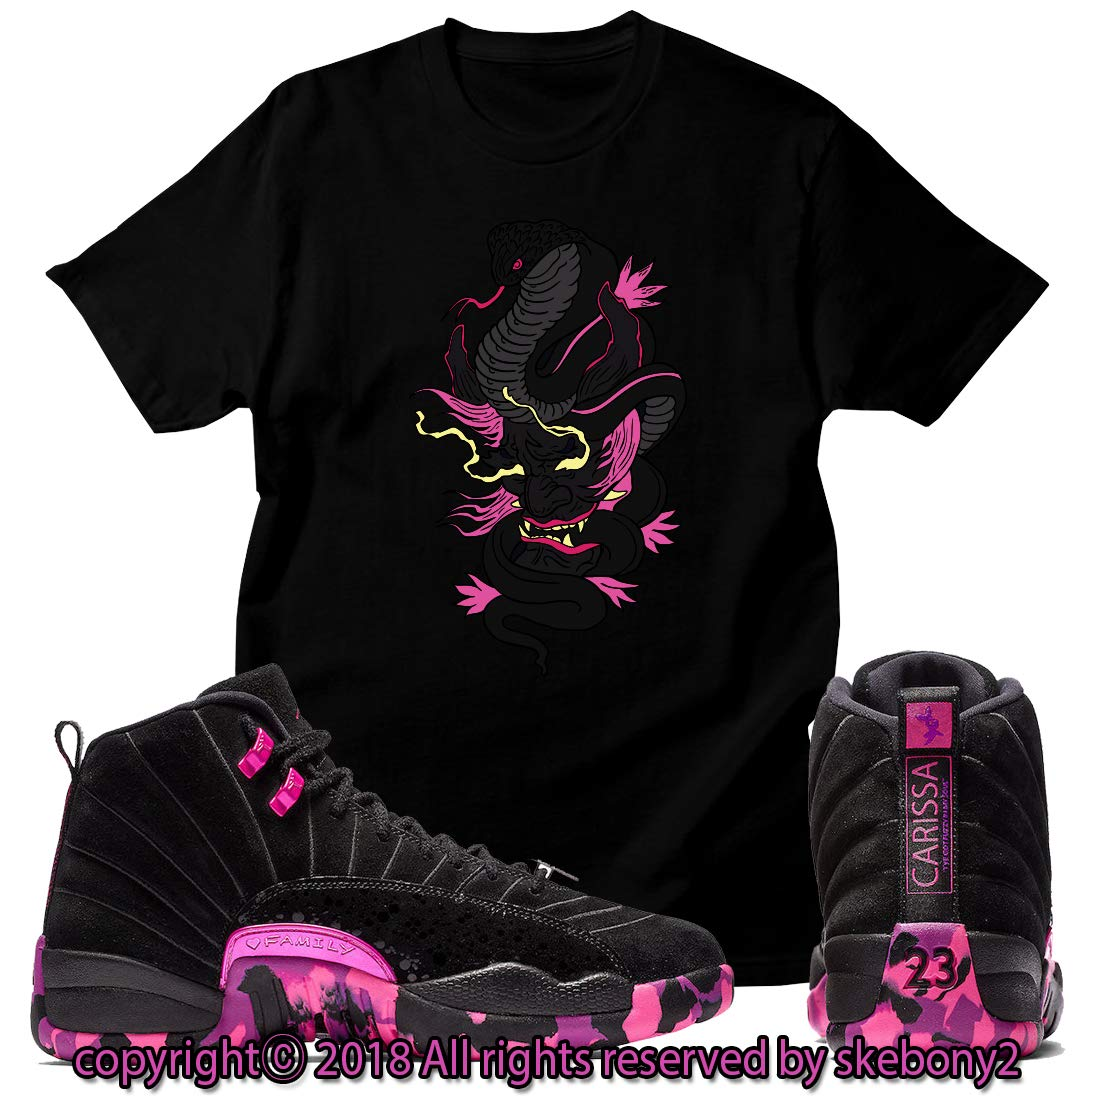 3da7efd8452ac Custom T Shirt Matching Air Jordan 12 Retro DB Pink JD 12-4-3 at ...